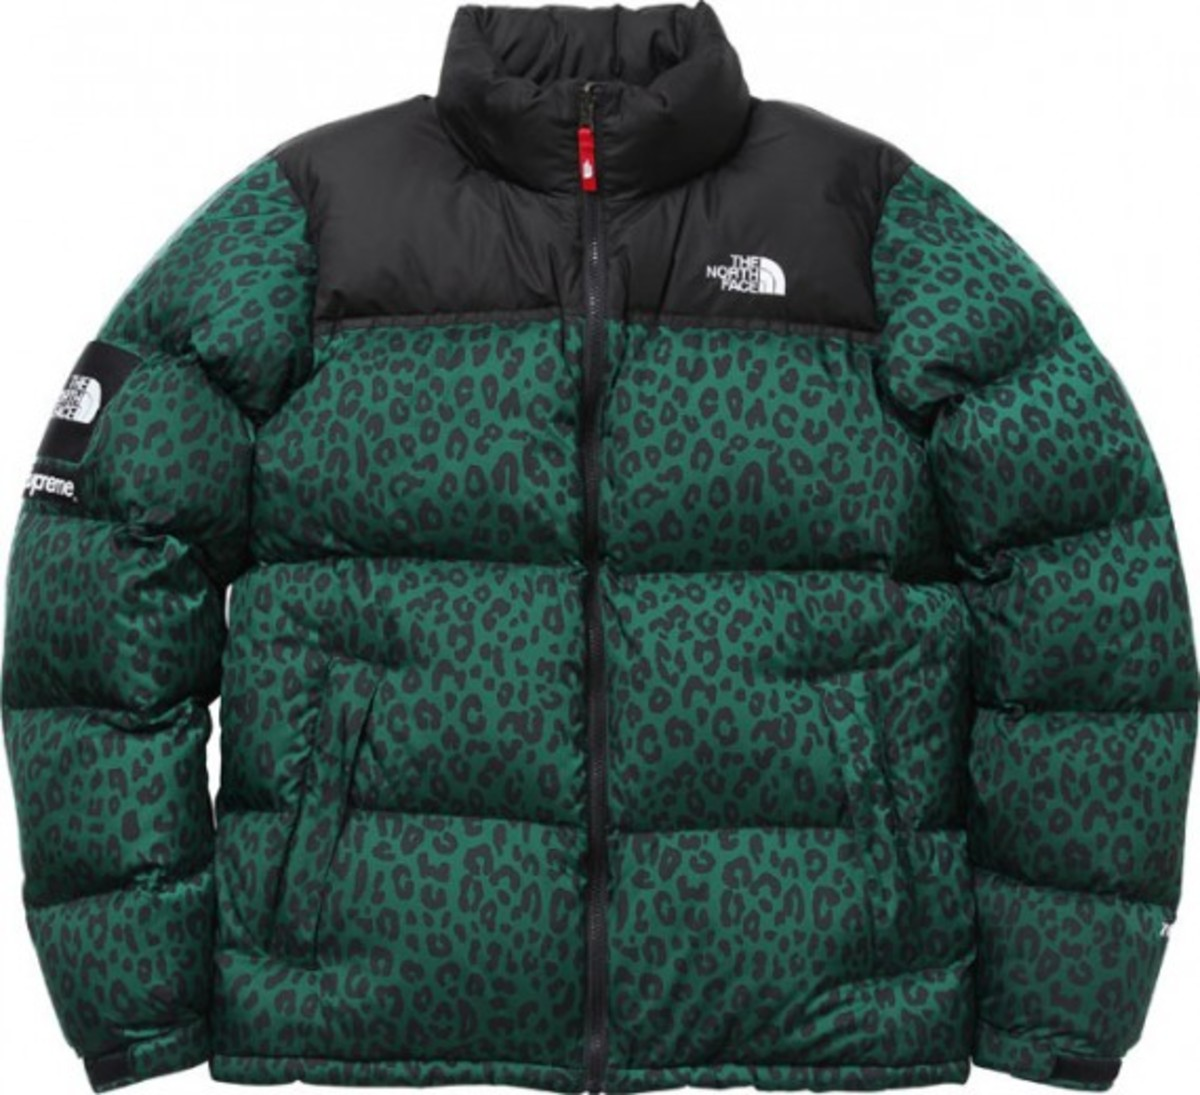 supreme-the-north-face-nuptse-down-jacket-005